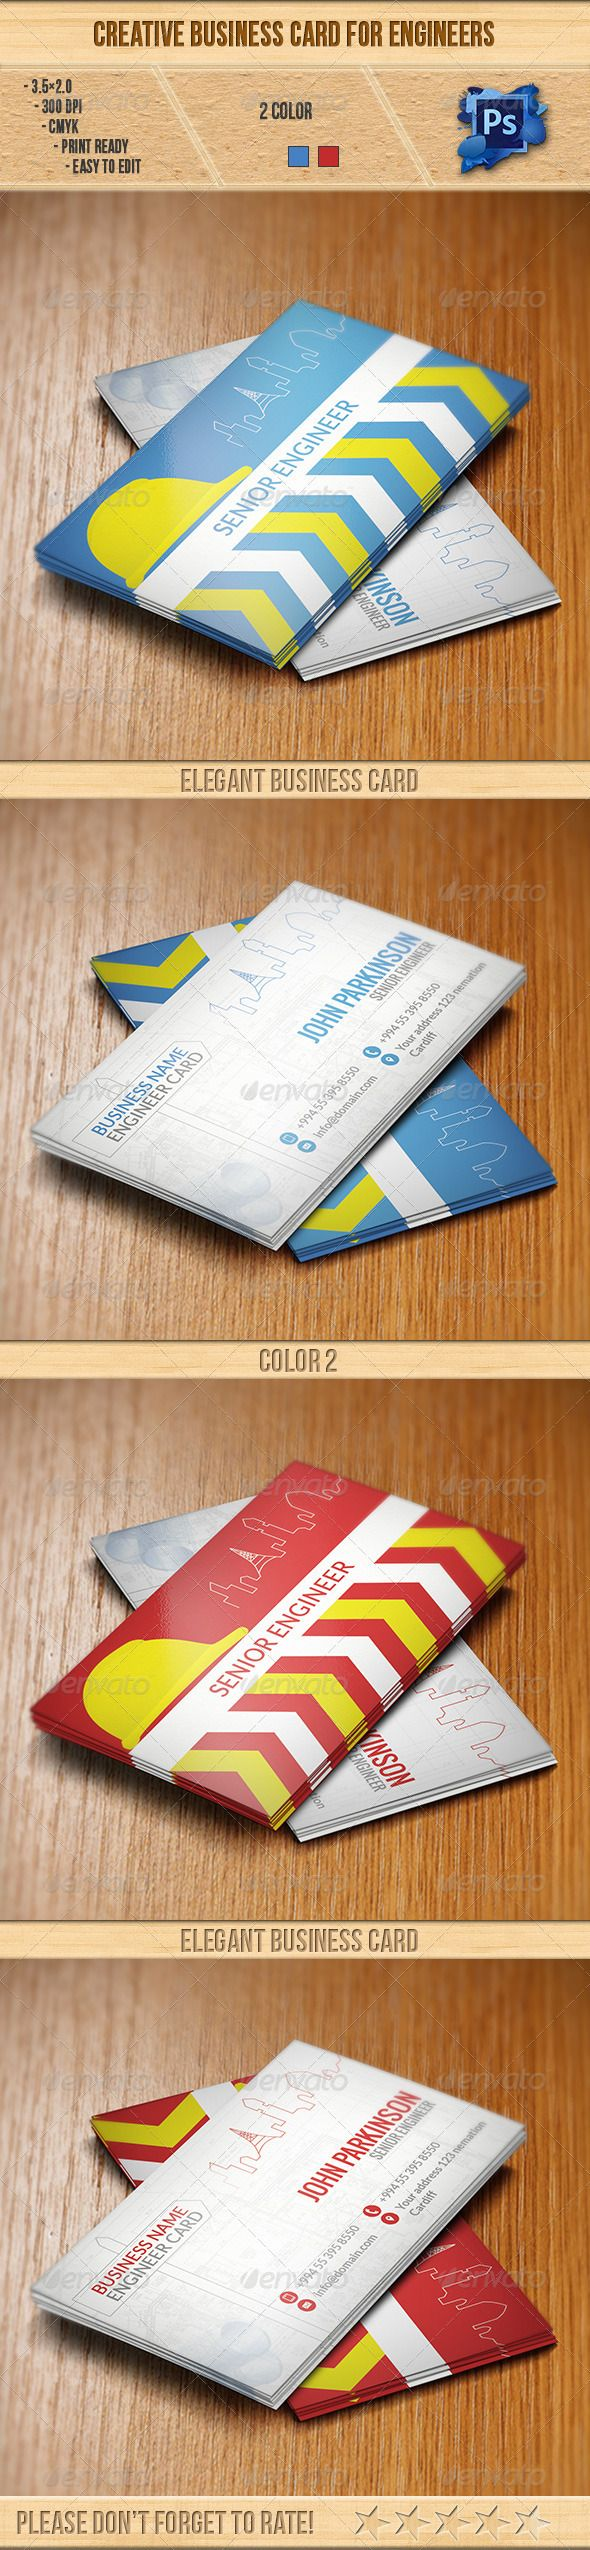 Creative Business Card for Engineers | Business cards, Business and ...